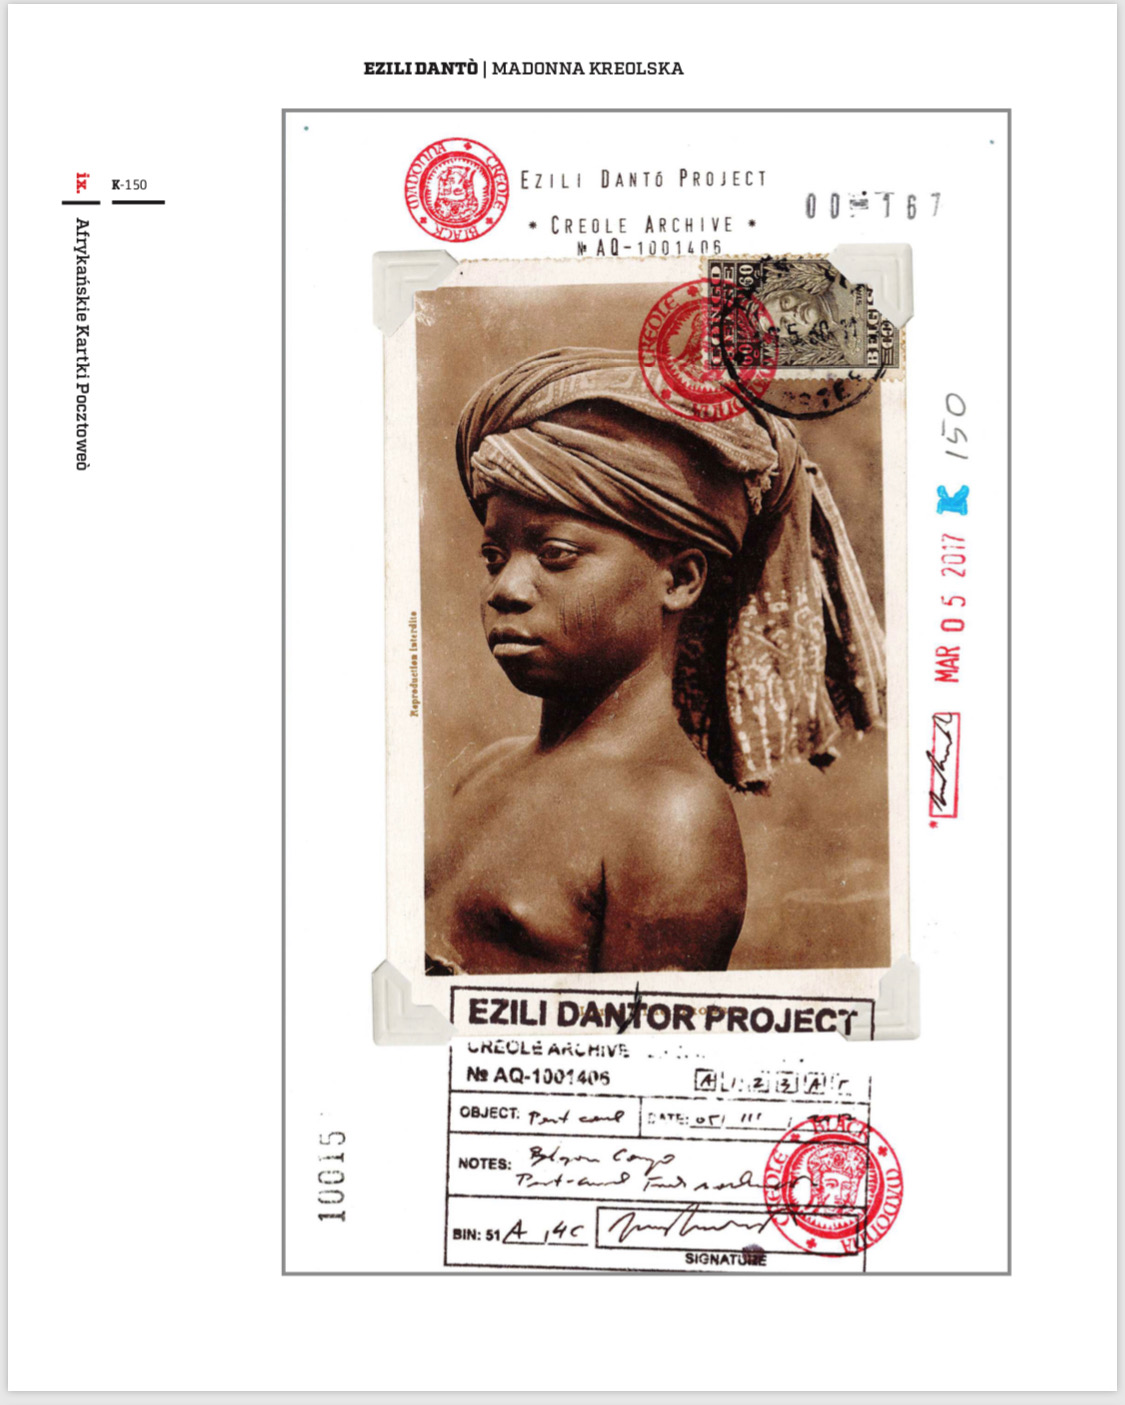 Creole Archive  consist of nearly 300 mixed media objects including:  Polaroids, postcards, postal stamps, religious cards, inkjet prints, lapel pins, medallions, 3doodler drawings, small religious objects